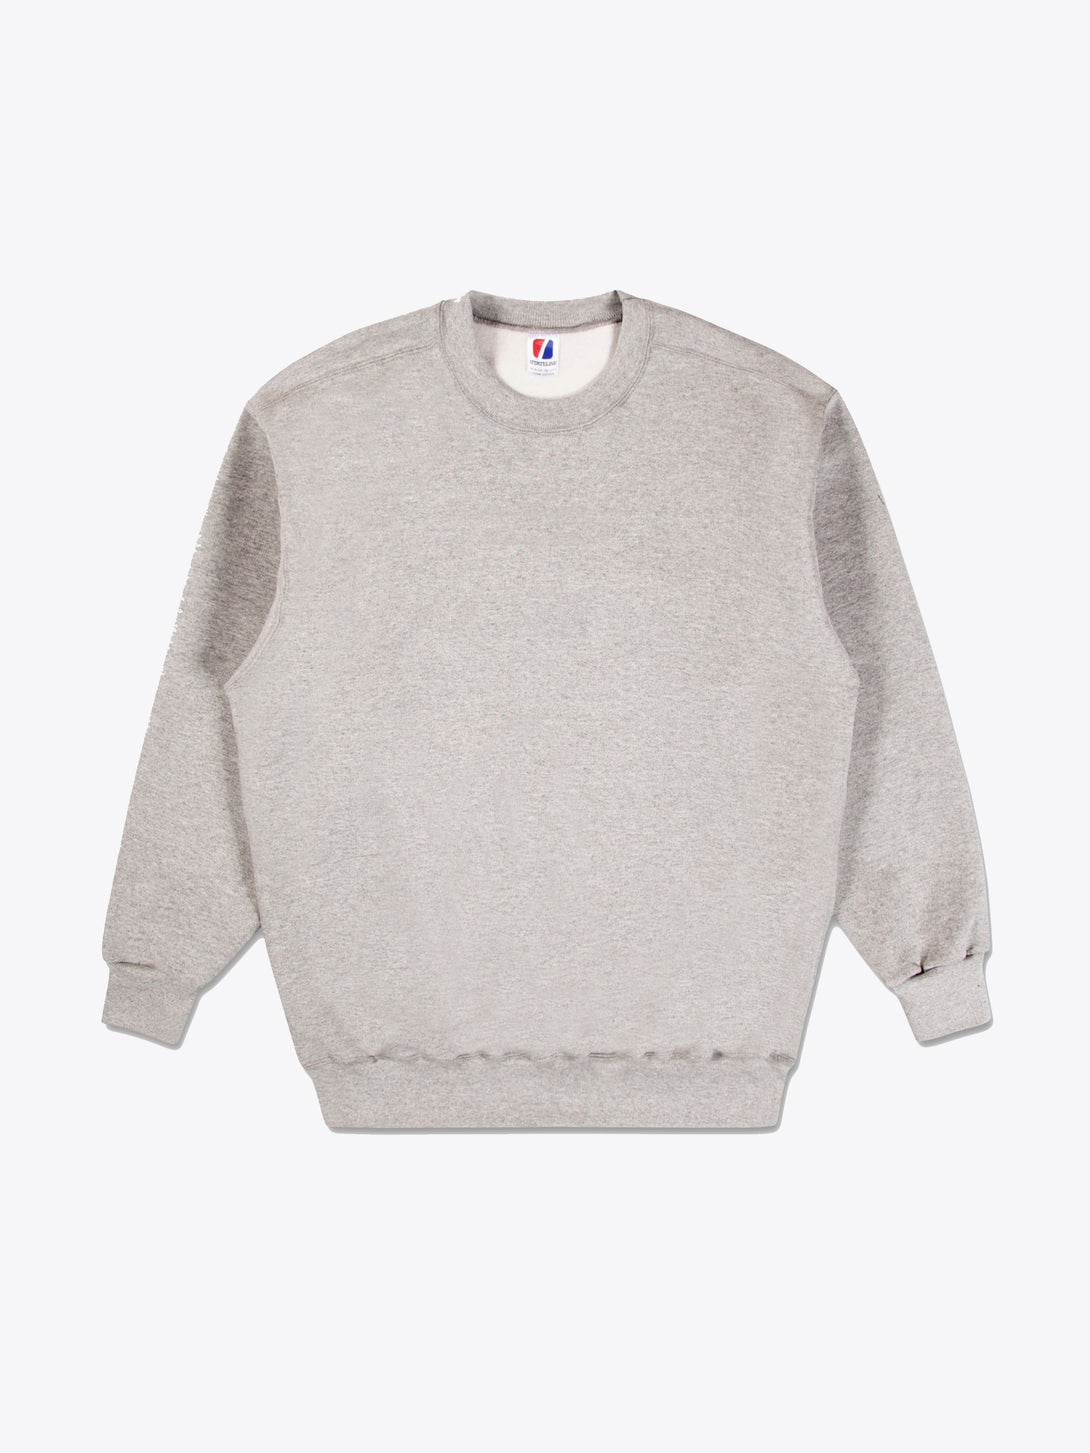 Work Fit Sweatshirt - Heather Grey